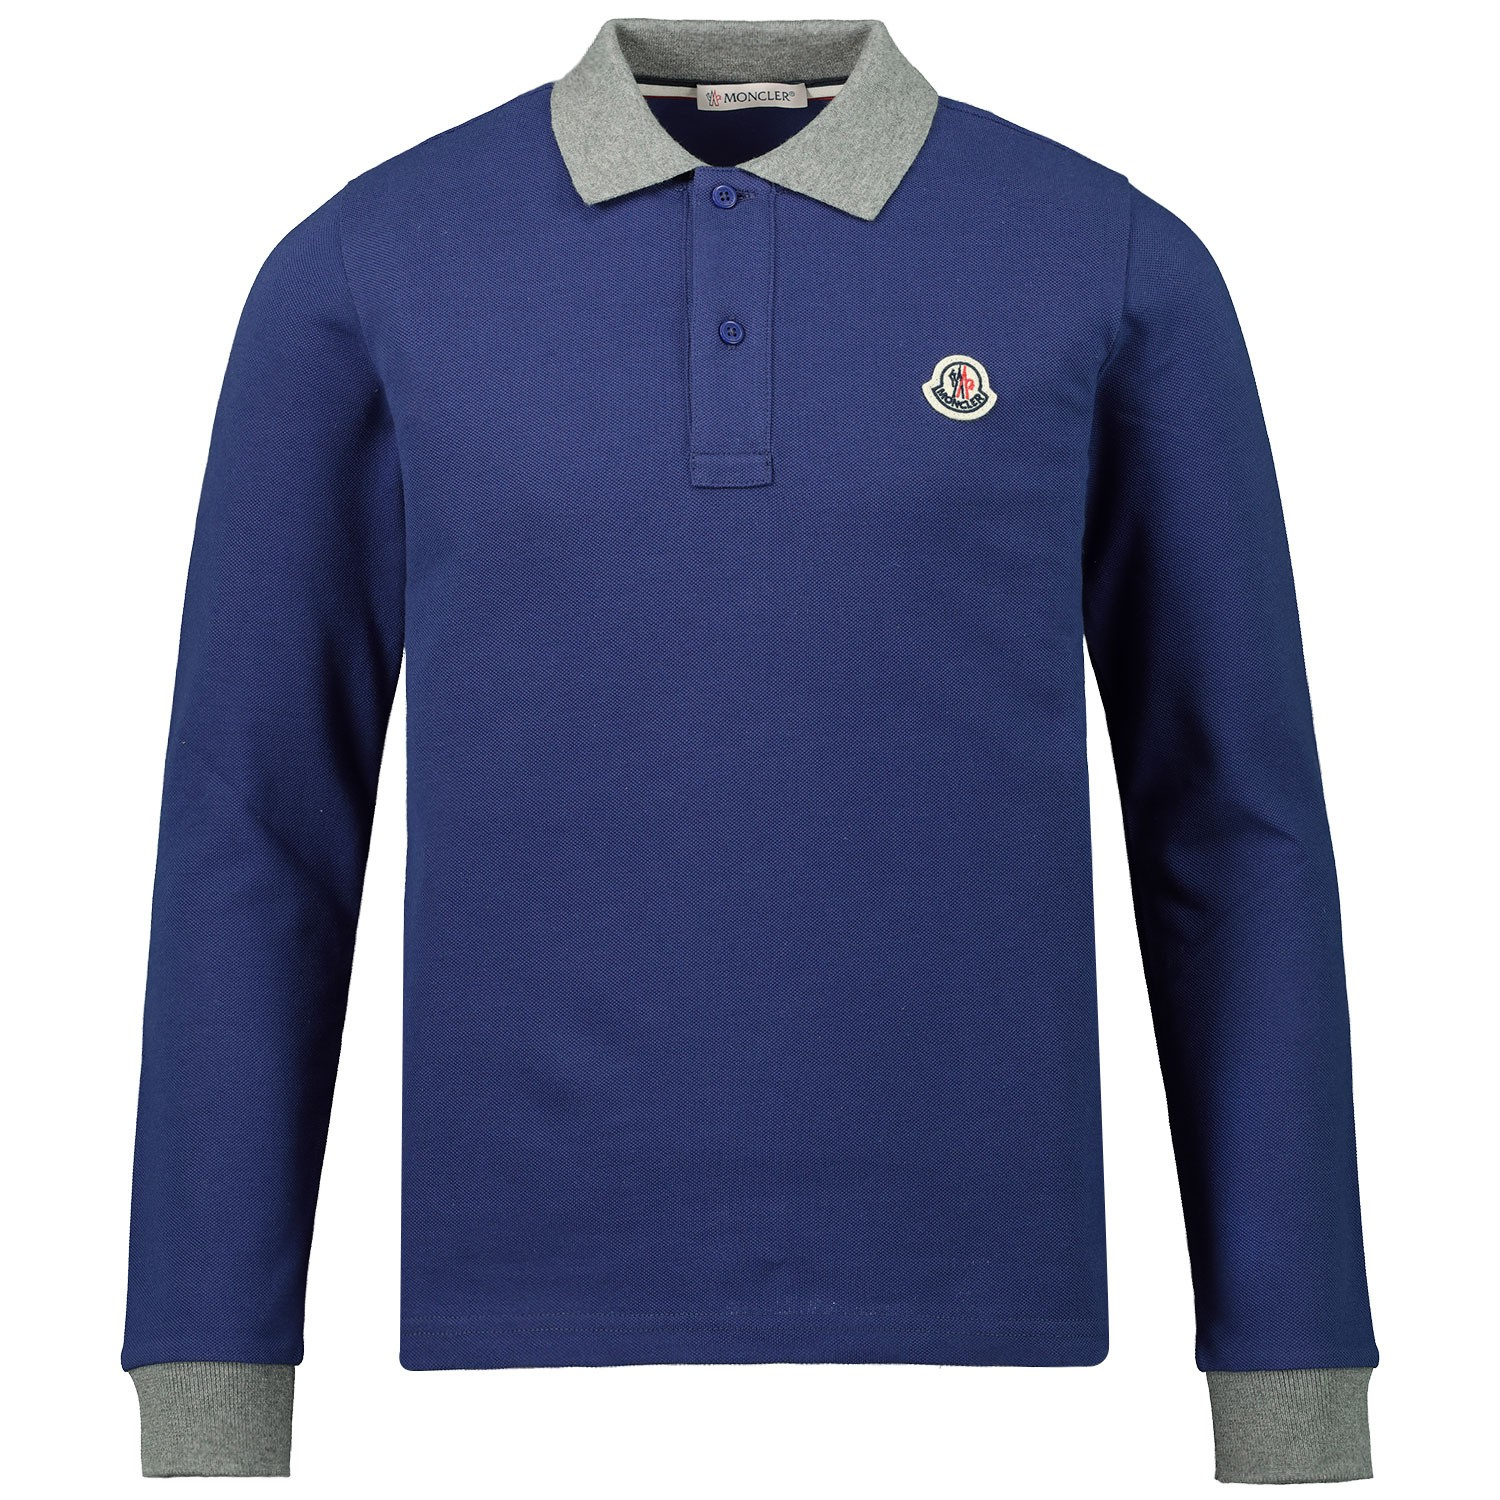 buy popular 79f96 e1ca8 Moncler 8307750 kinder polo cobalt blauw